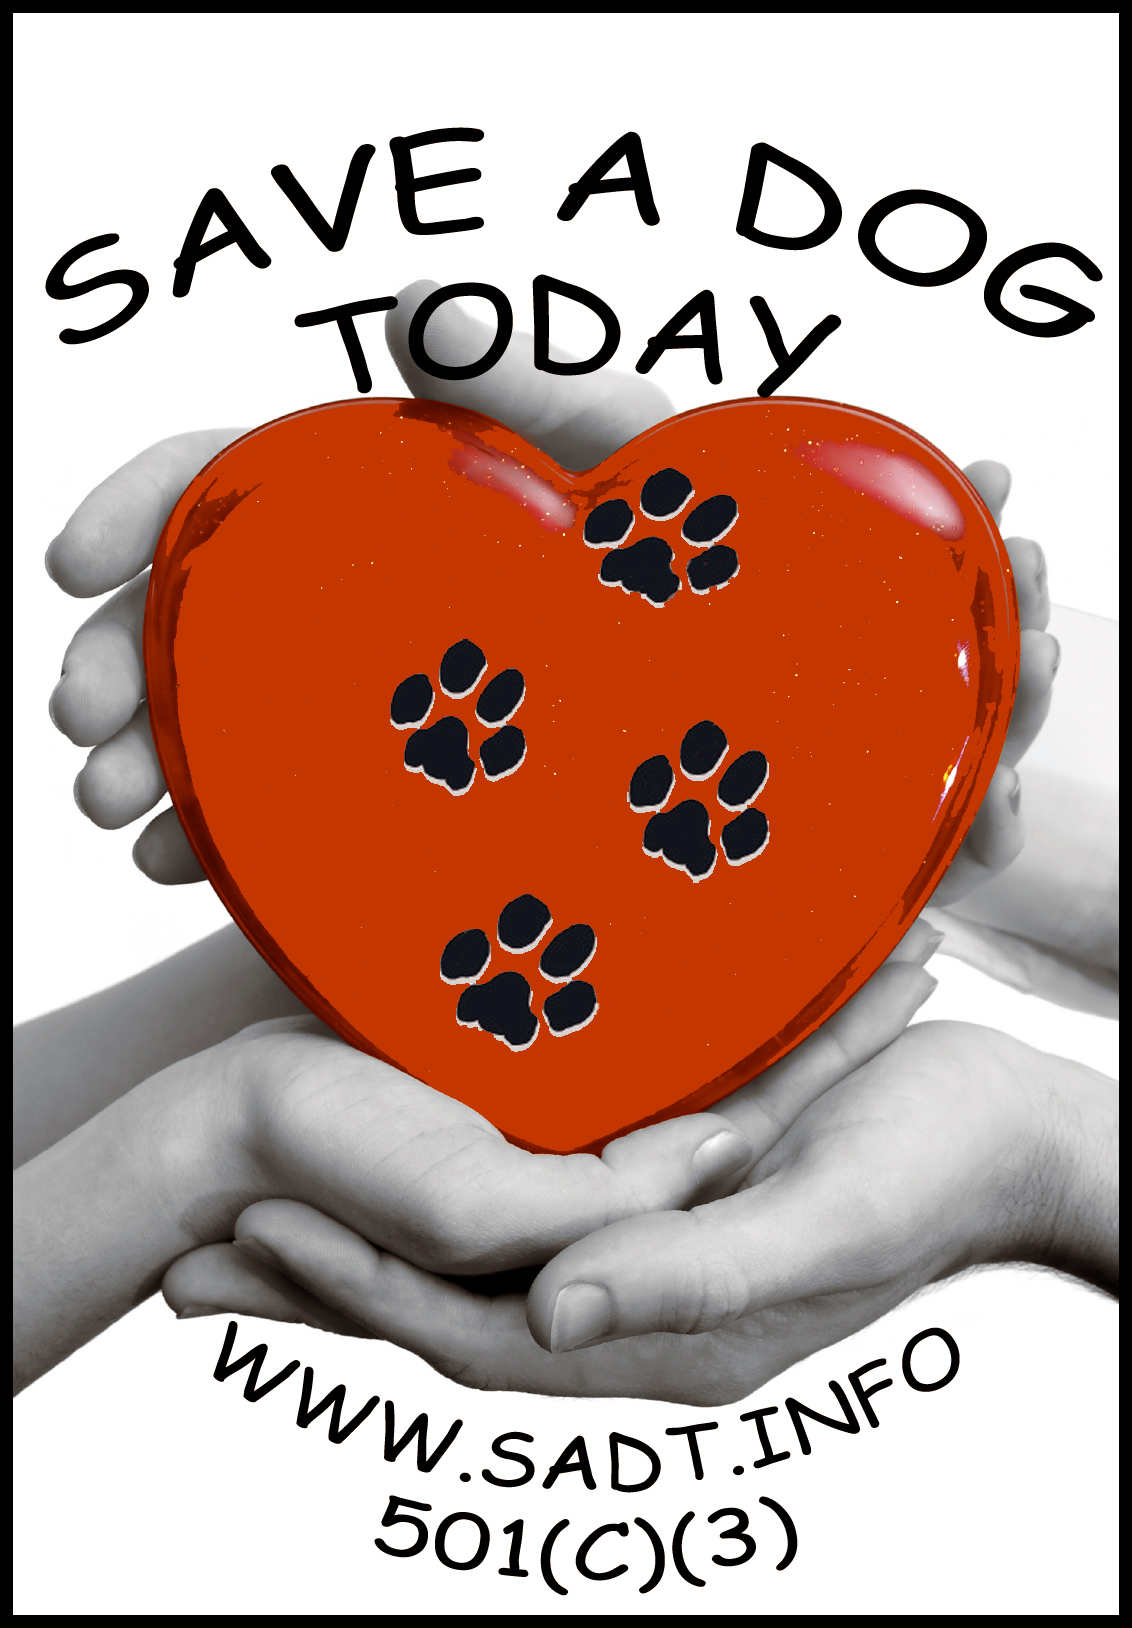 Save A Dog Today